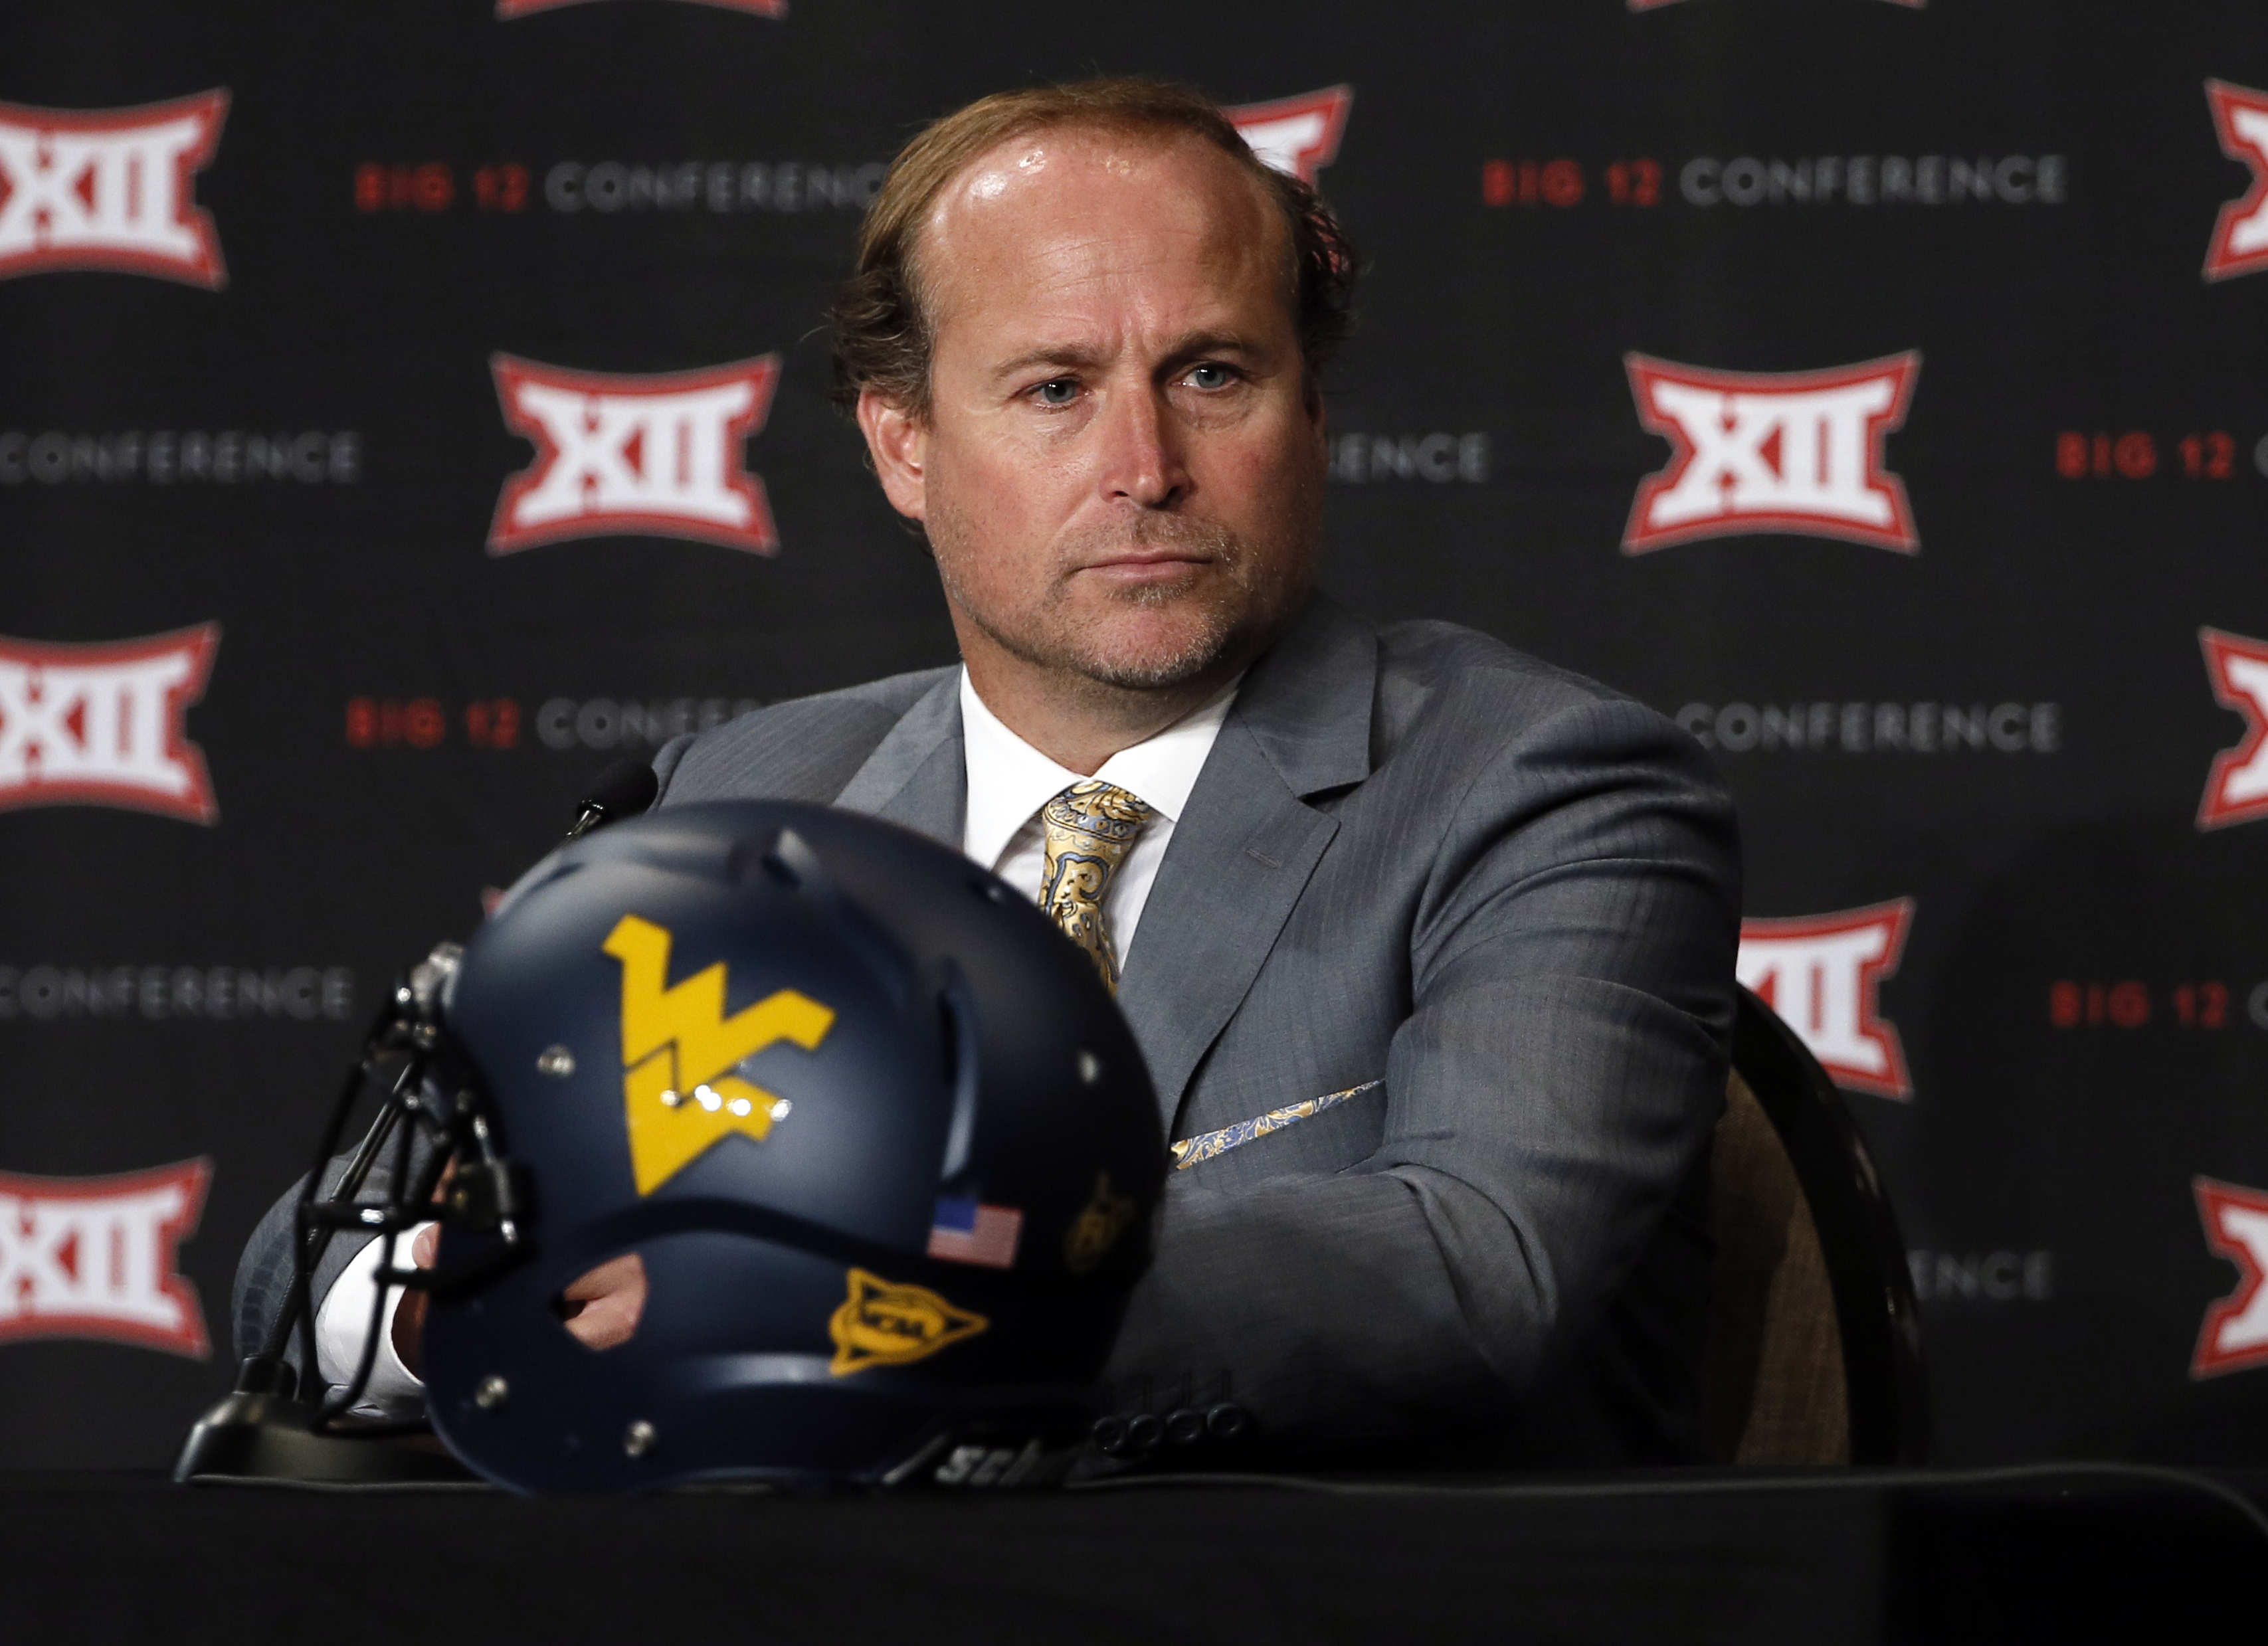 FILE - In this July 20, 2015, file photo, West Virginia head football coach Dana Holgorsen addresses attendees at Big 12 Conference Football Media Days in Dallas. The bar may not be set too high for West Virginia, which is predicted to finish toward the b